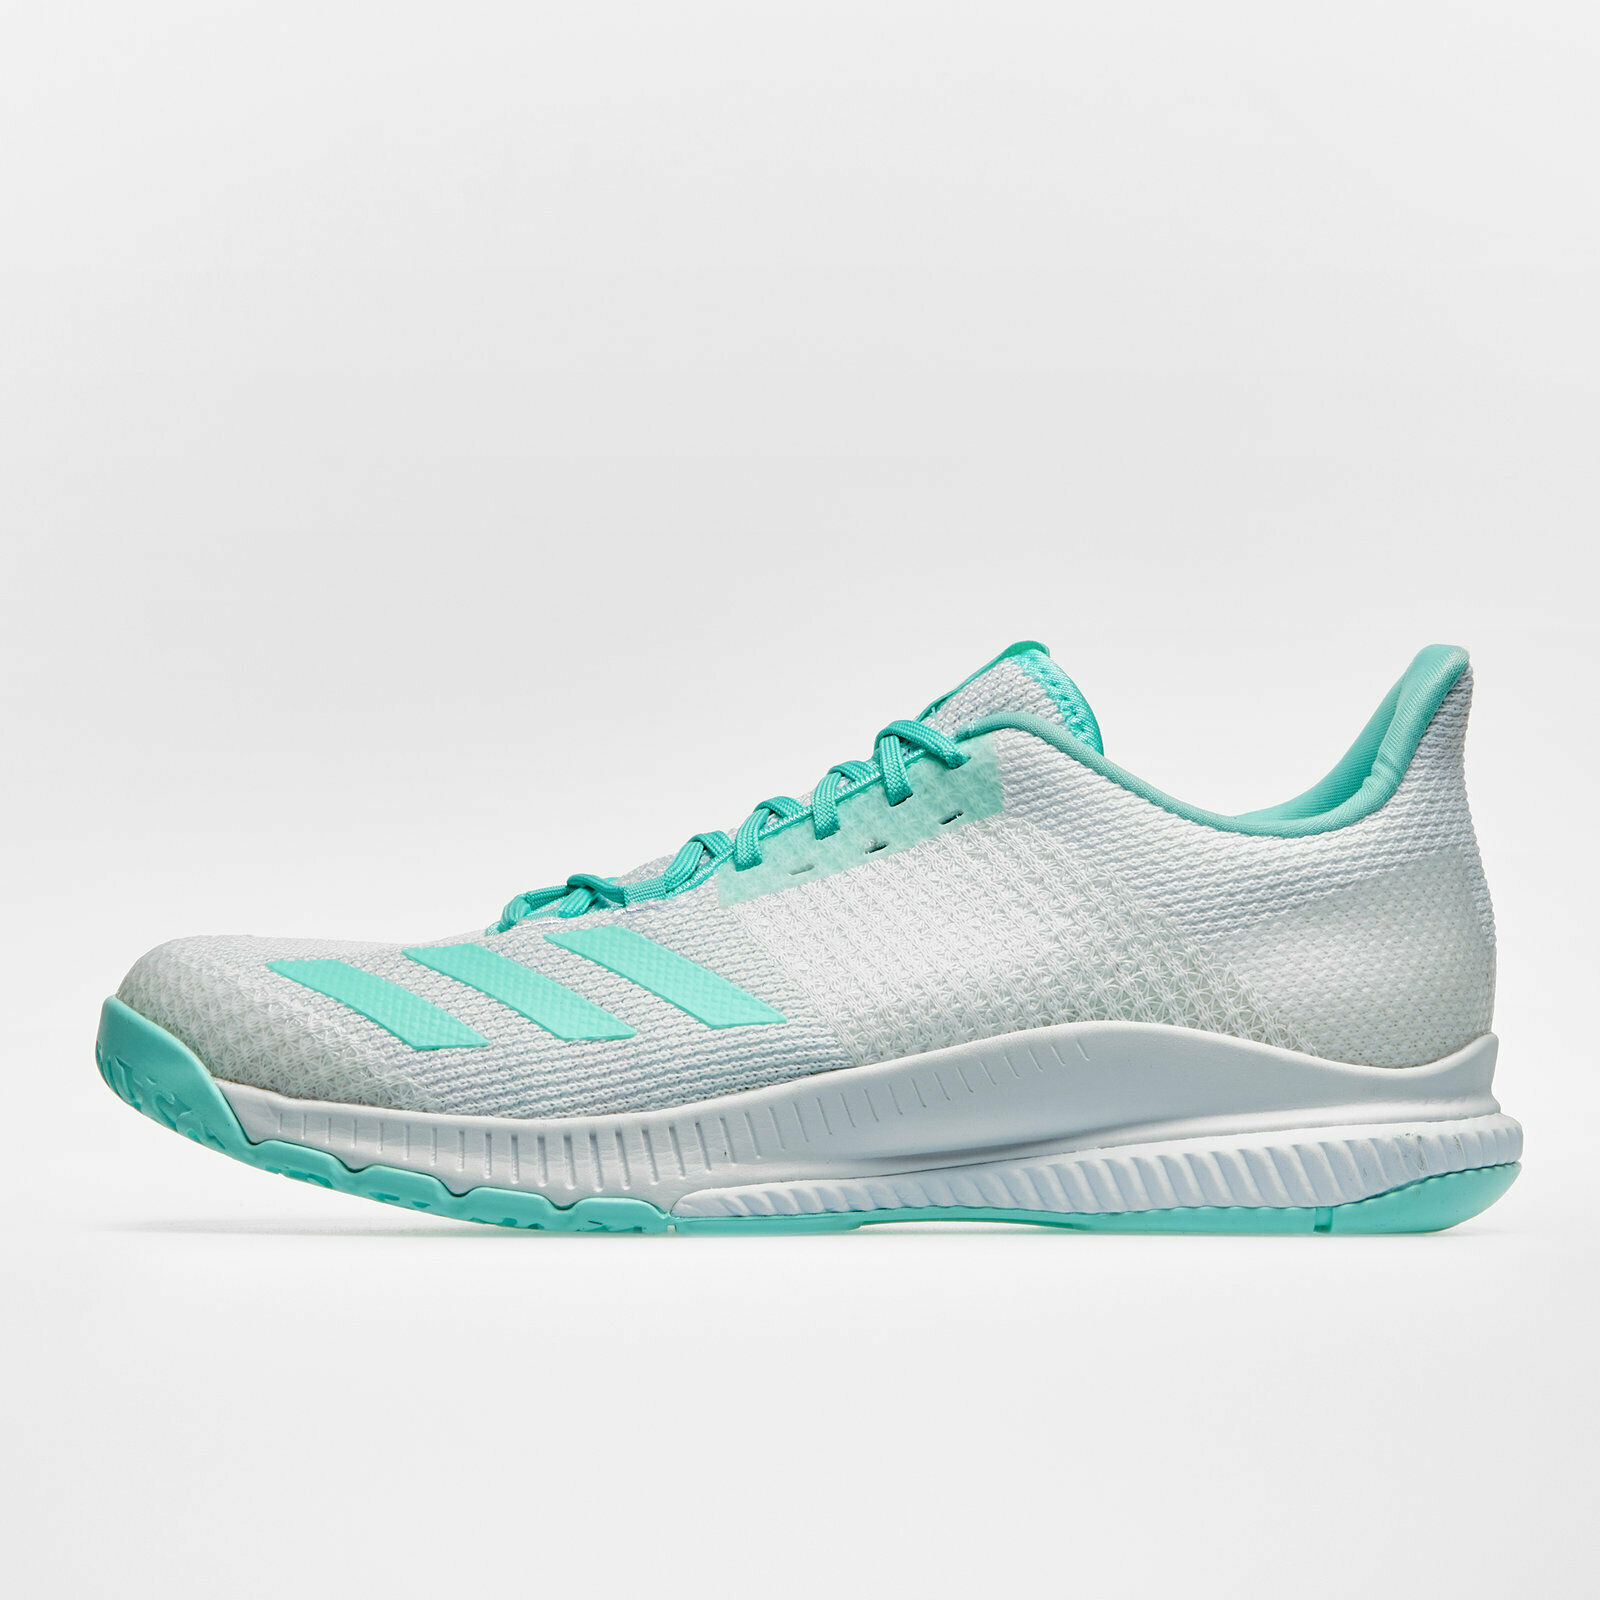 Adidas donna Crazybay Bounce Netball Trainers Sports scarpe  bianca  all'ingrosso a buon mercato